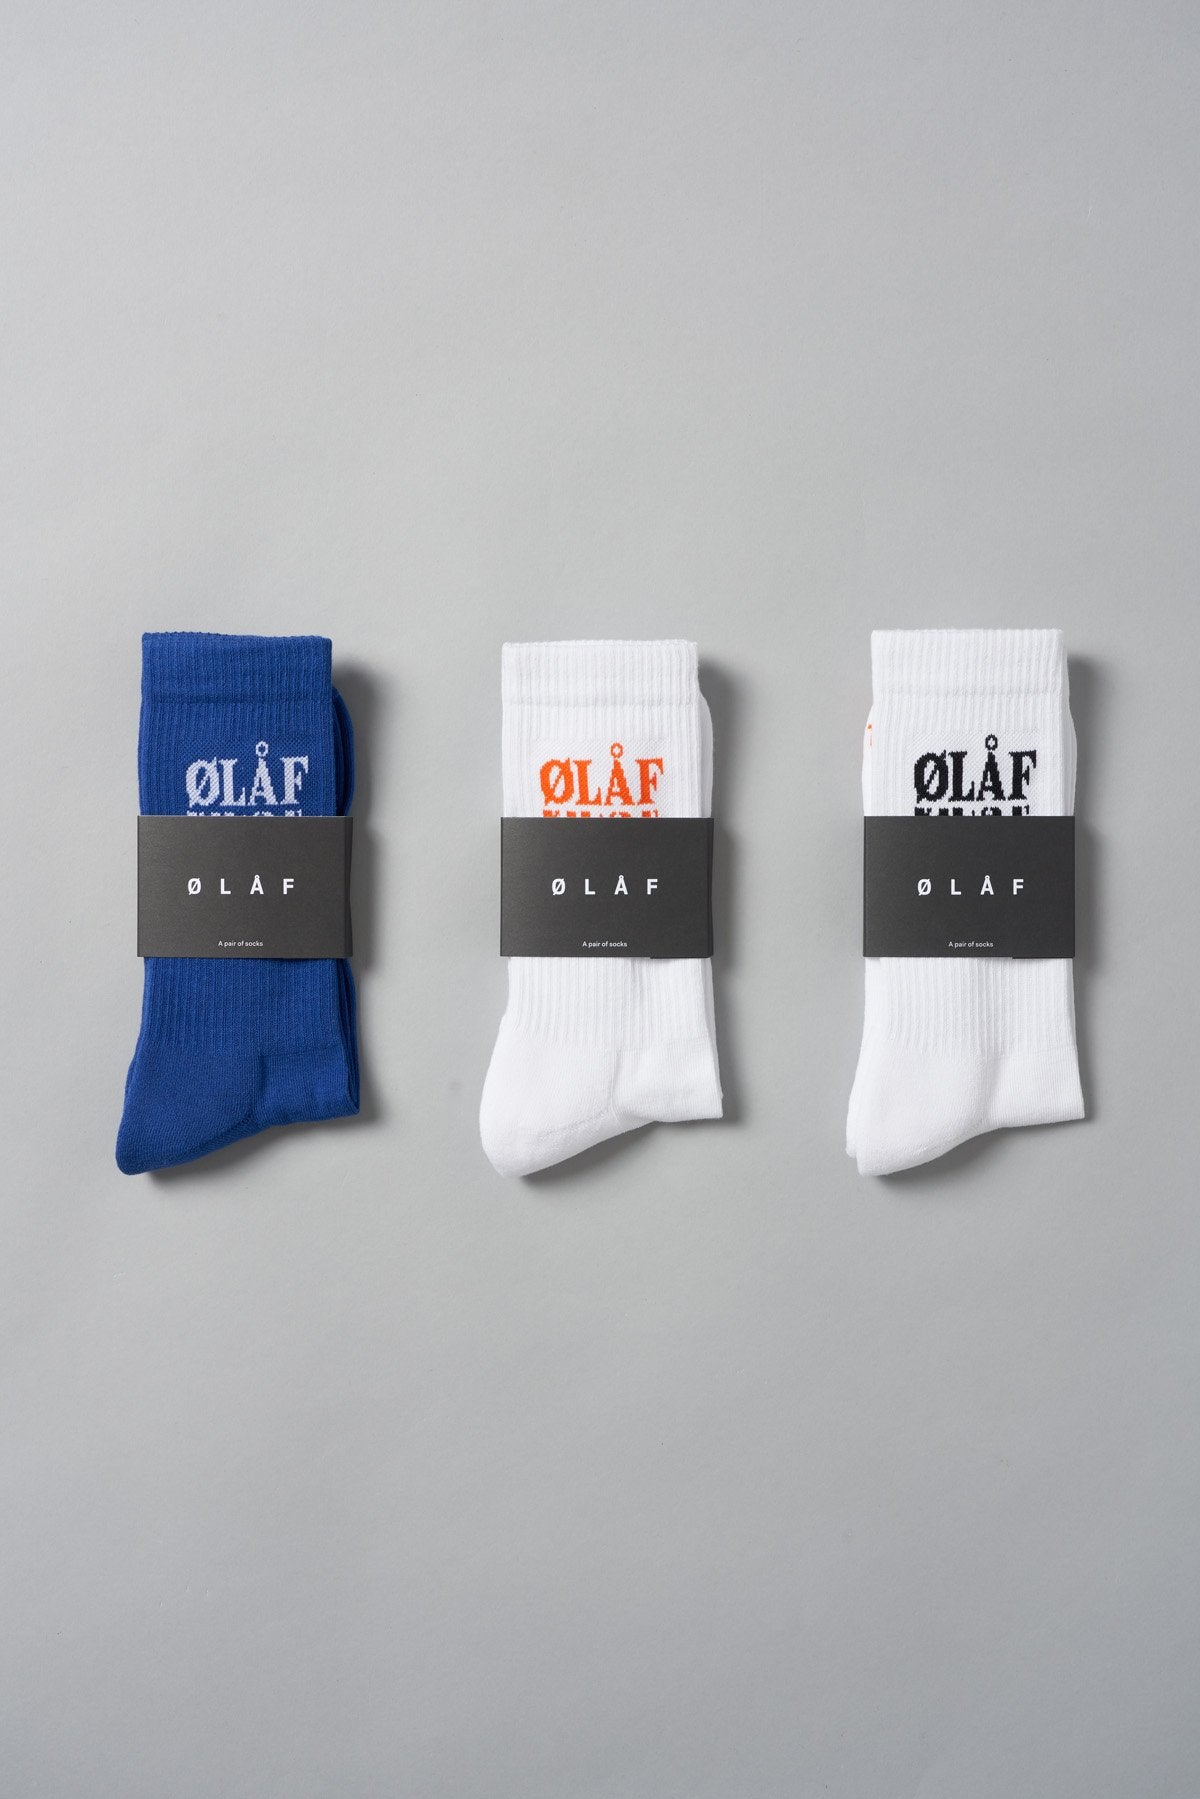 3-Pack ØLÅF Triple Socks Blue / White, 75% Portuguese cotton, 23% polyamide, 2% elastane, Logo on ankle and foot, Made in Portugal.